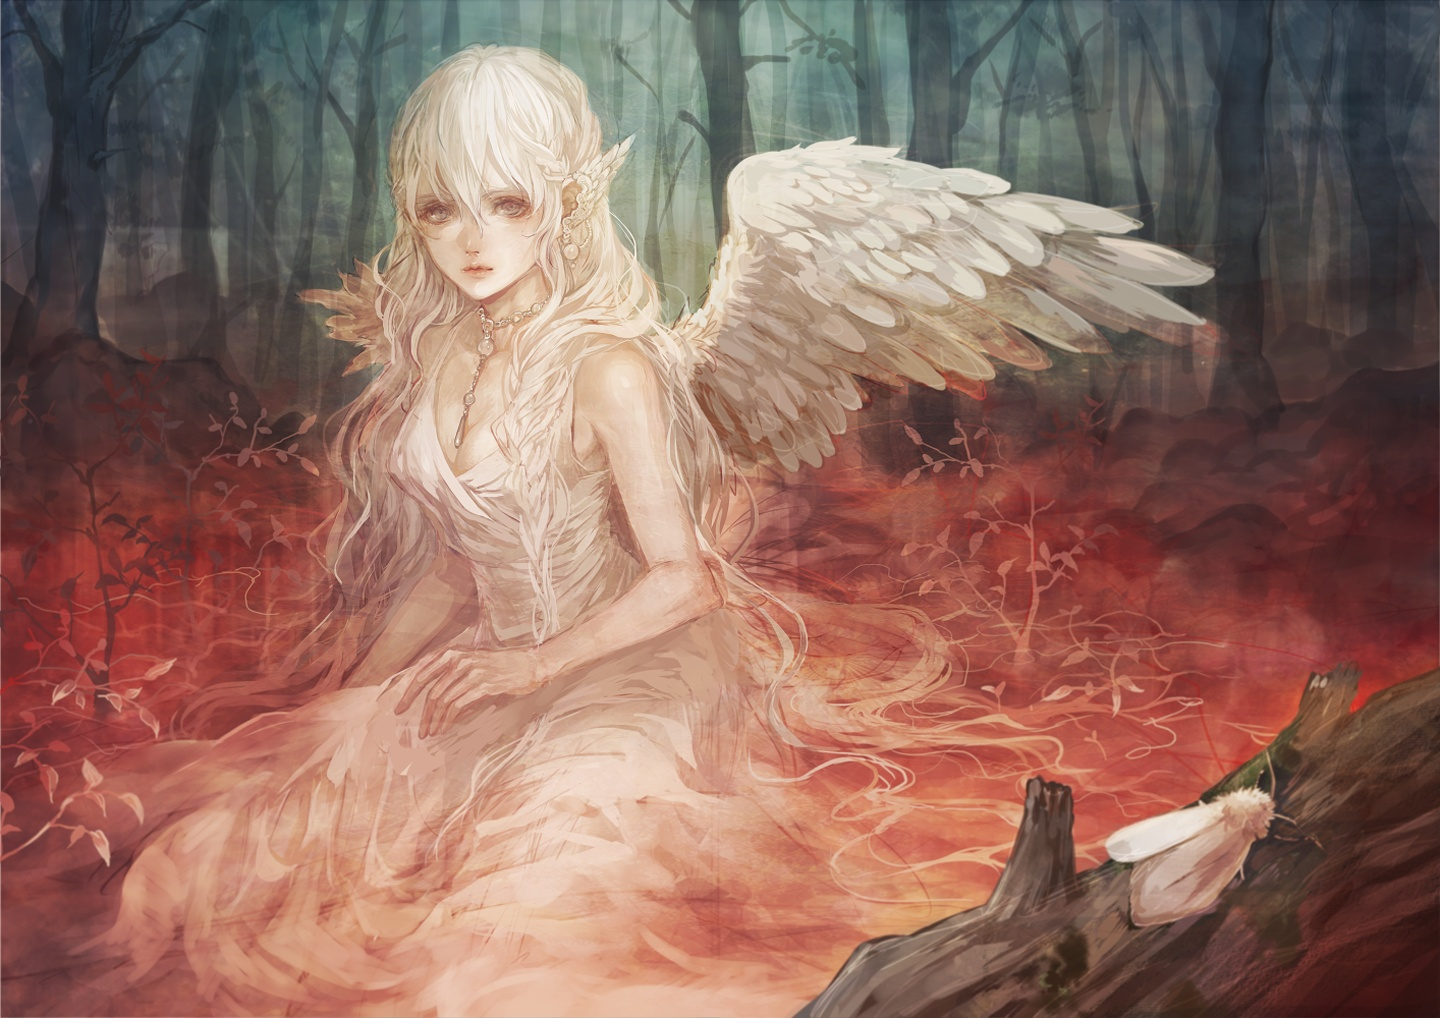 Beautiful Anime Girl Fantasy Forest Wallpaper Angels Sad Girls Beautiful Forest Insects Nature Fantasy